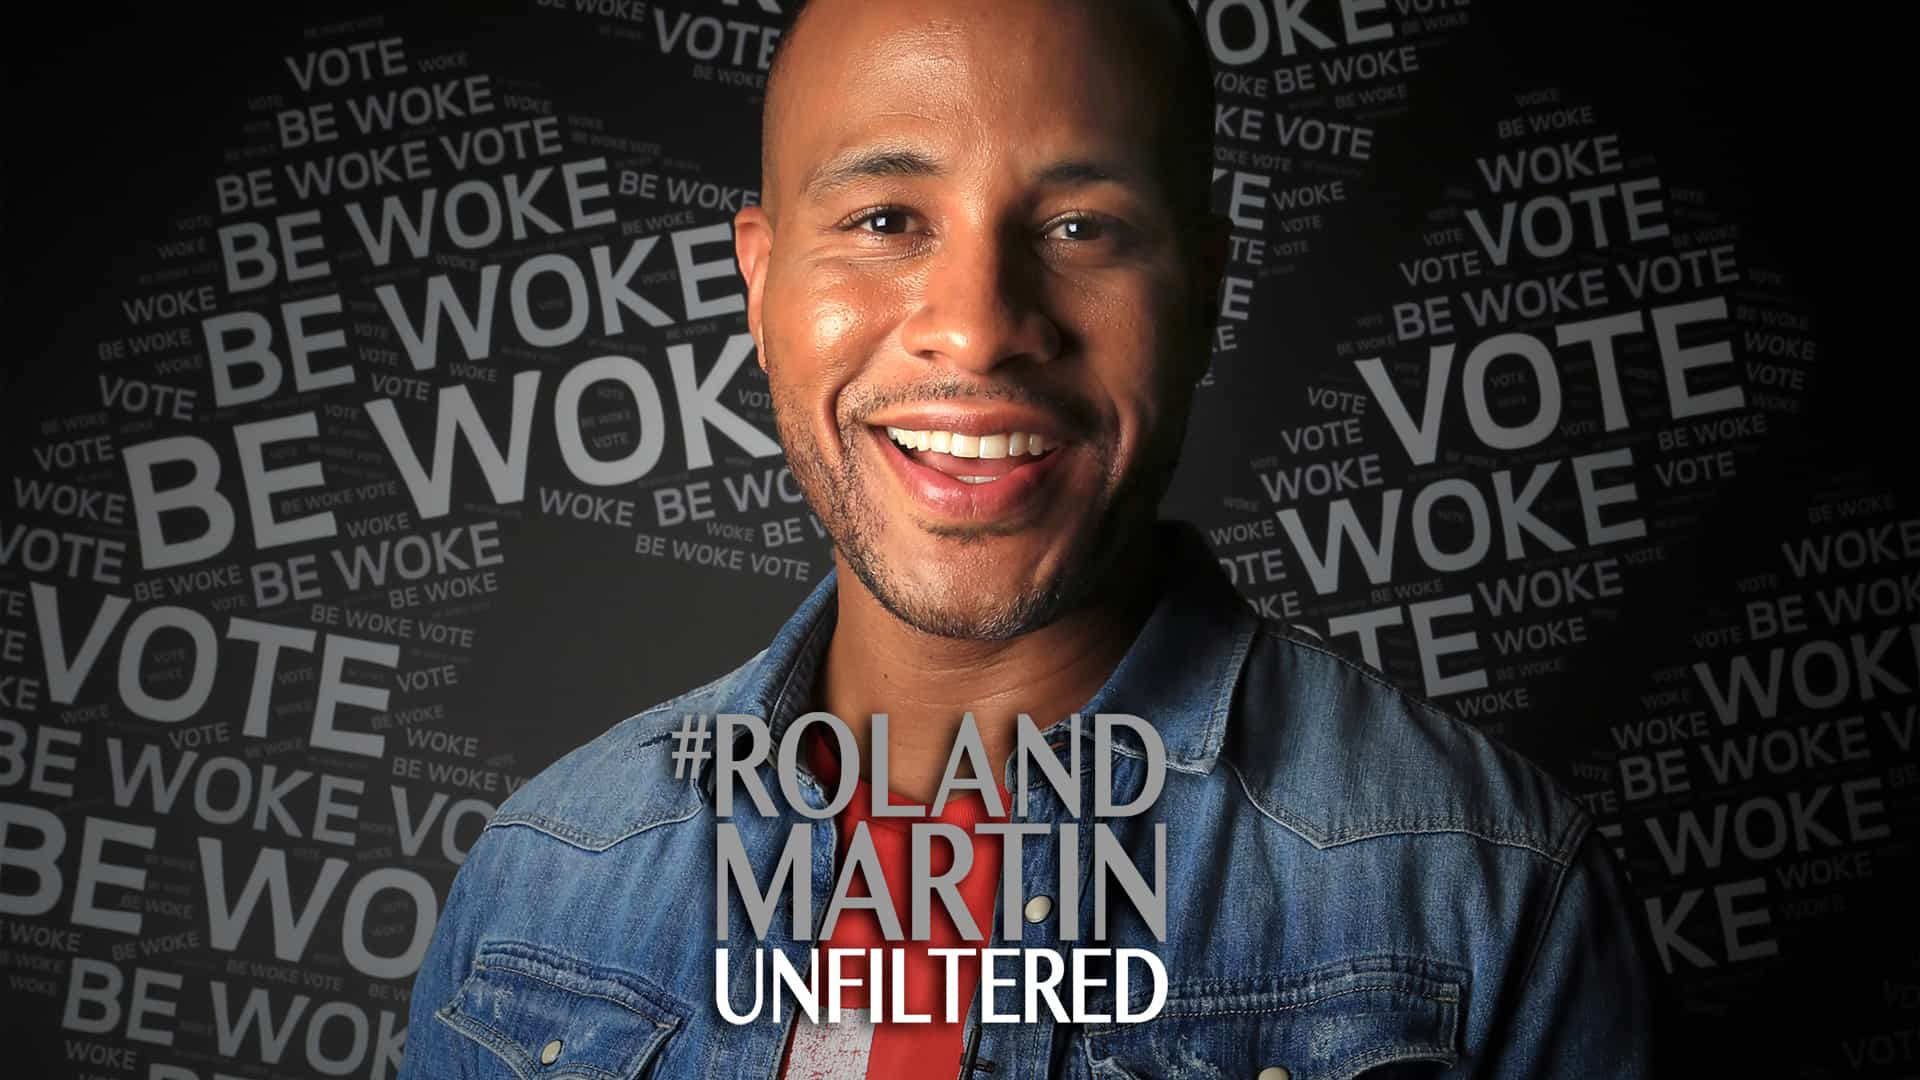 Be Woke presents Devon Franklin